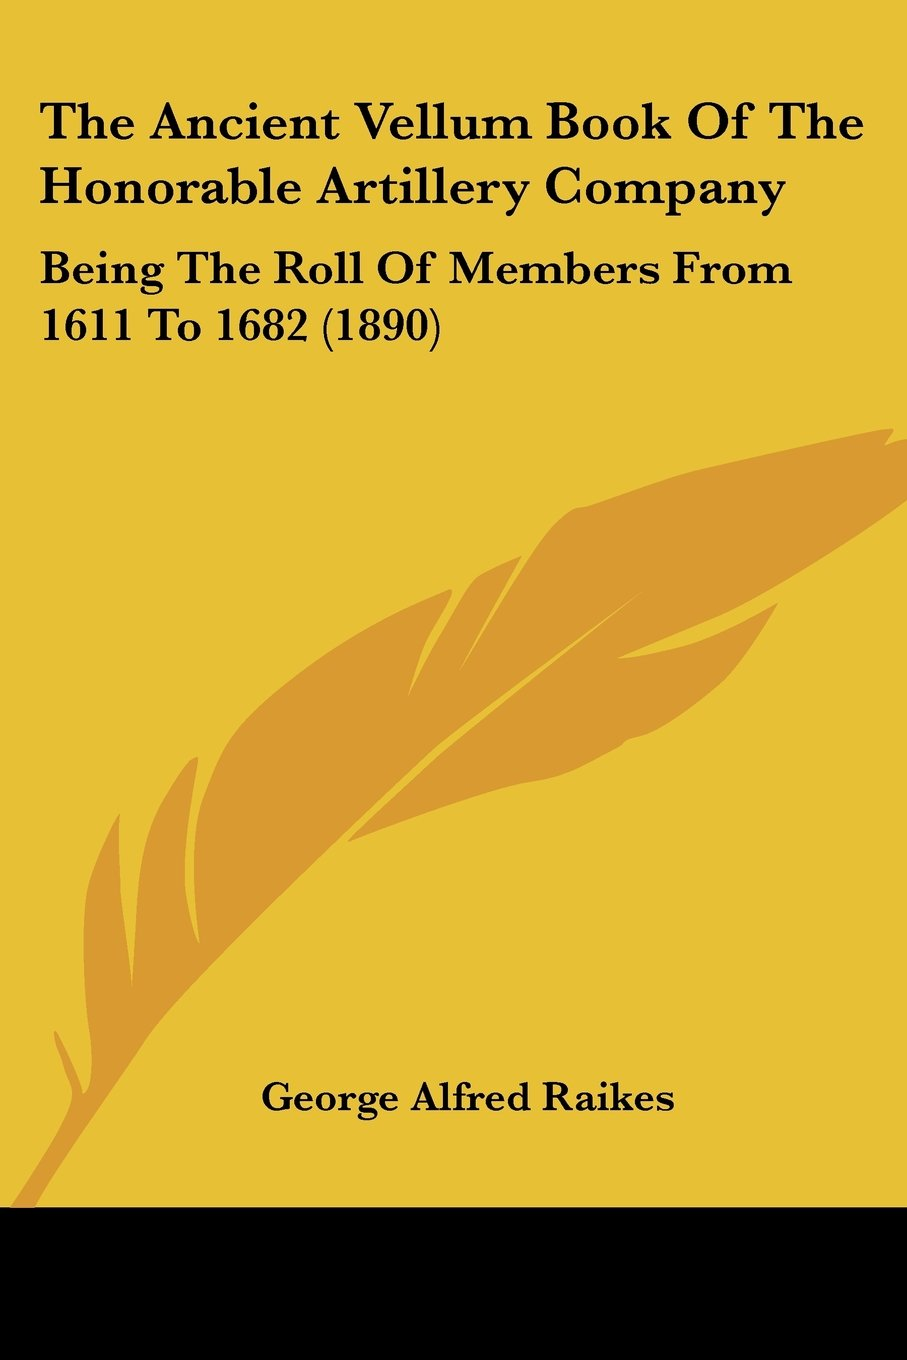 The Ancient Vellum Book Of The Honorable Artillery Company: Being The Roll Of Members From 1611 To 1682 (1890) pdf